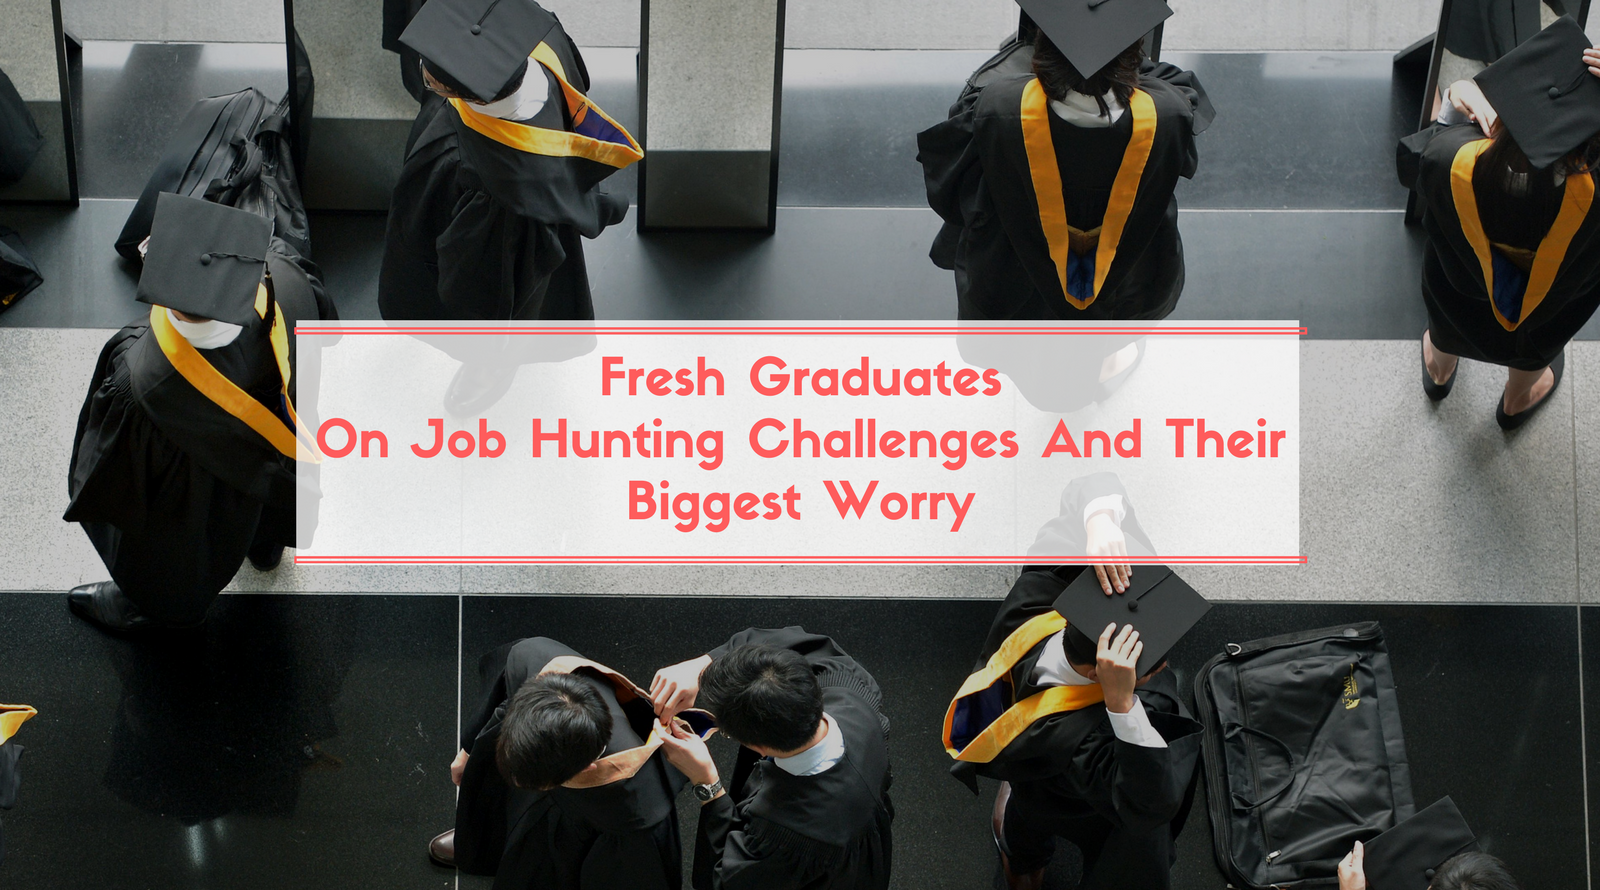 7 Fresh Graduates Share Their Challenges While Job Hunting And Their Biggest Worry